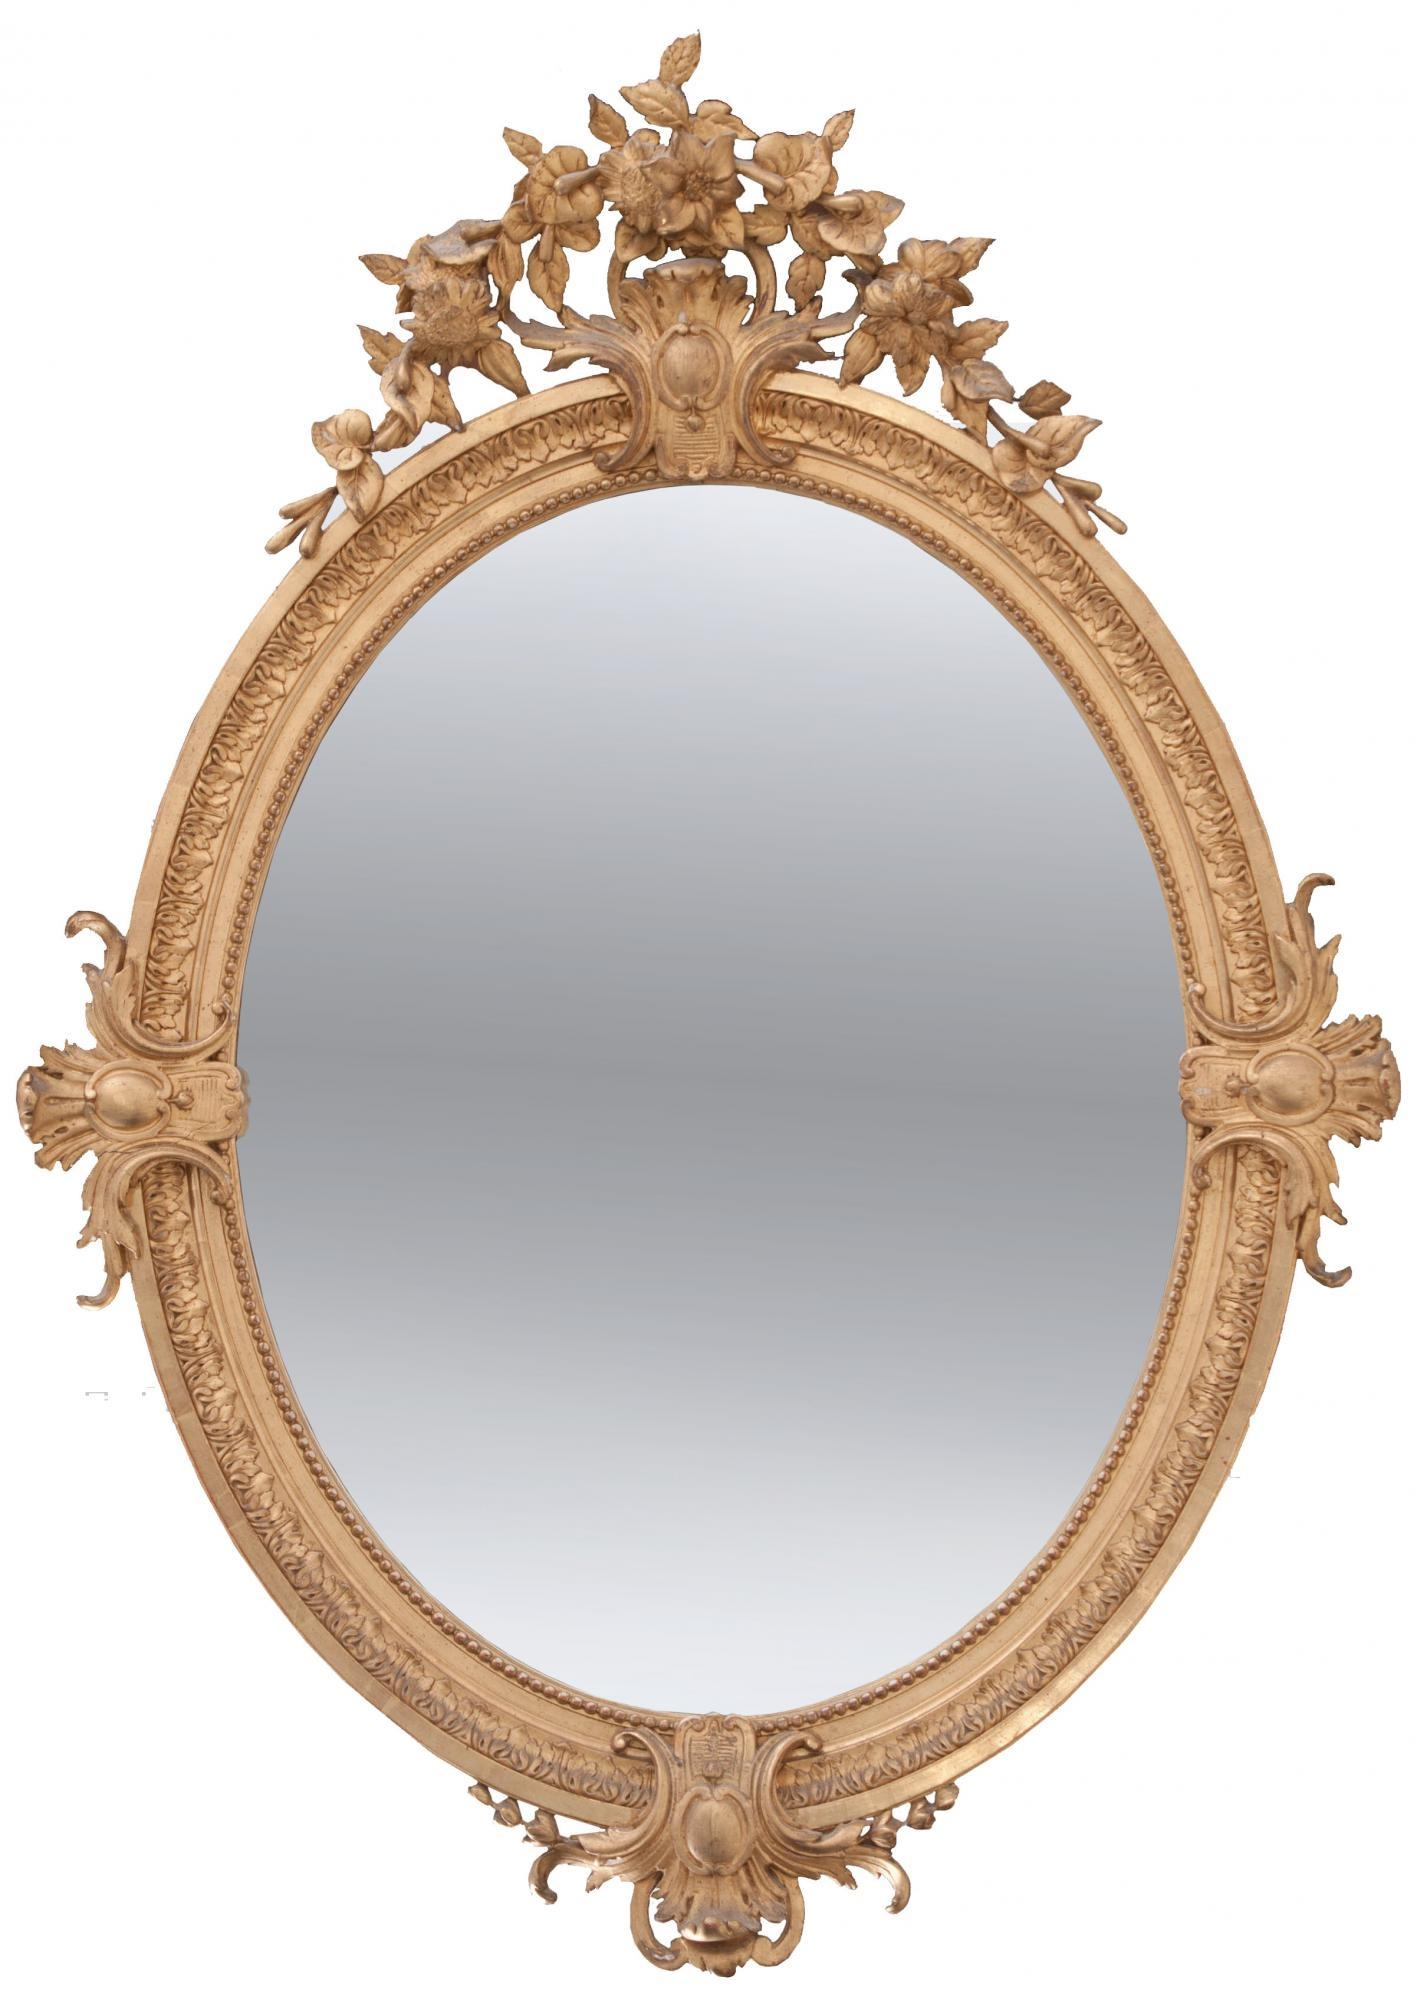 French 19Th Century Oval Gold Gilt Mirror Intended For Gold Gilt Mirror (Image 7 of 20)